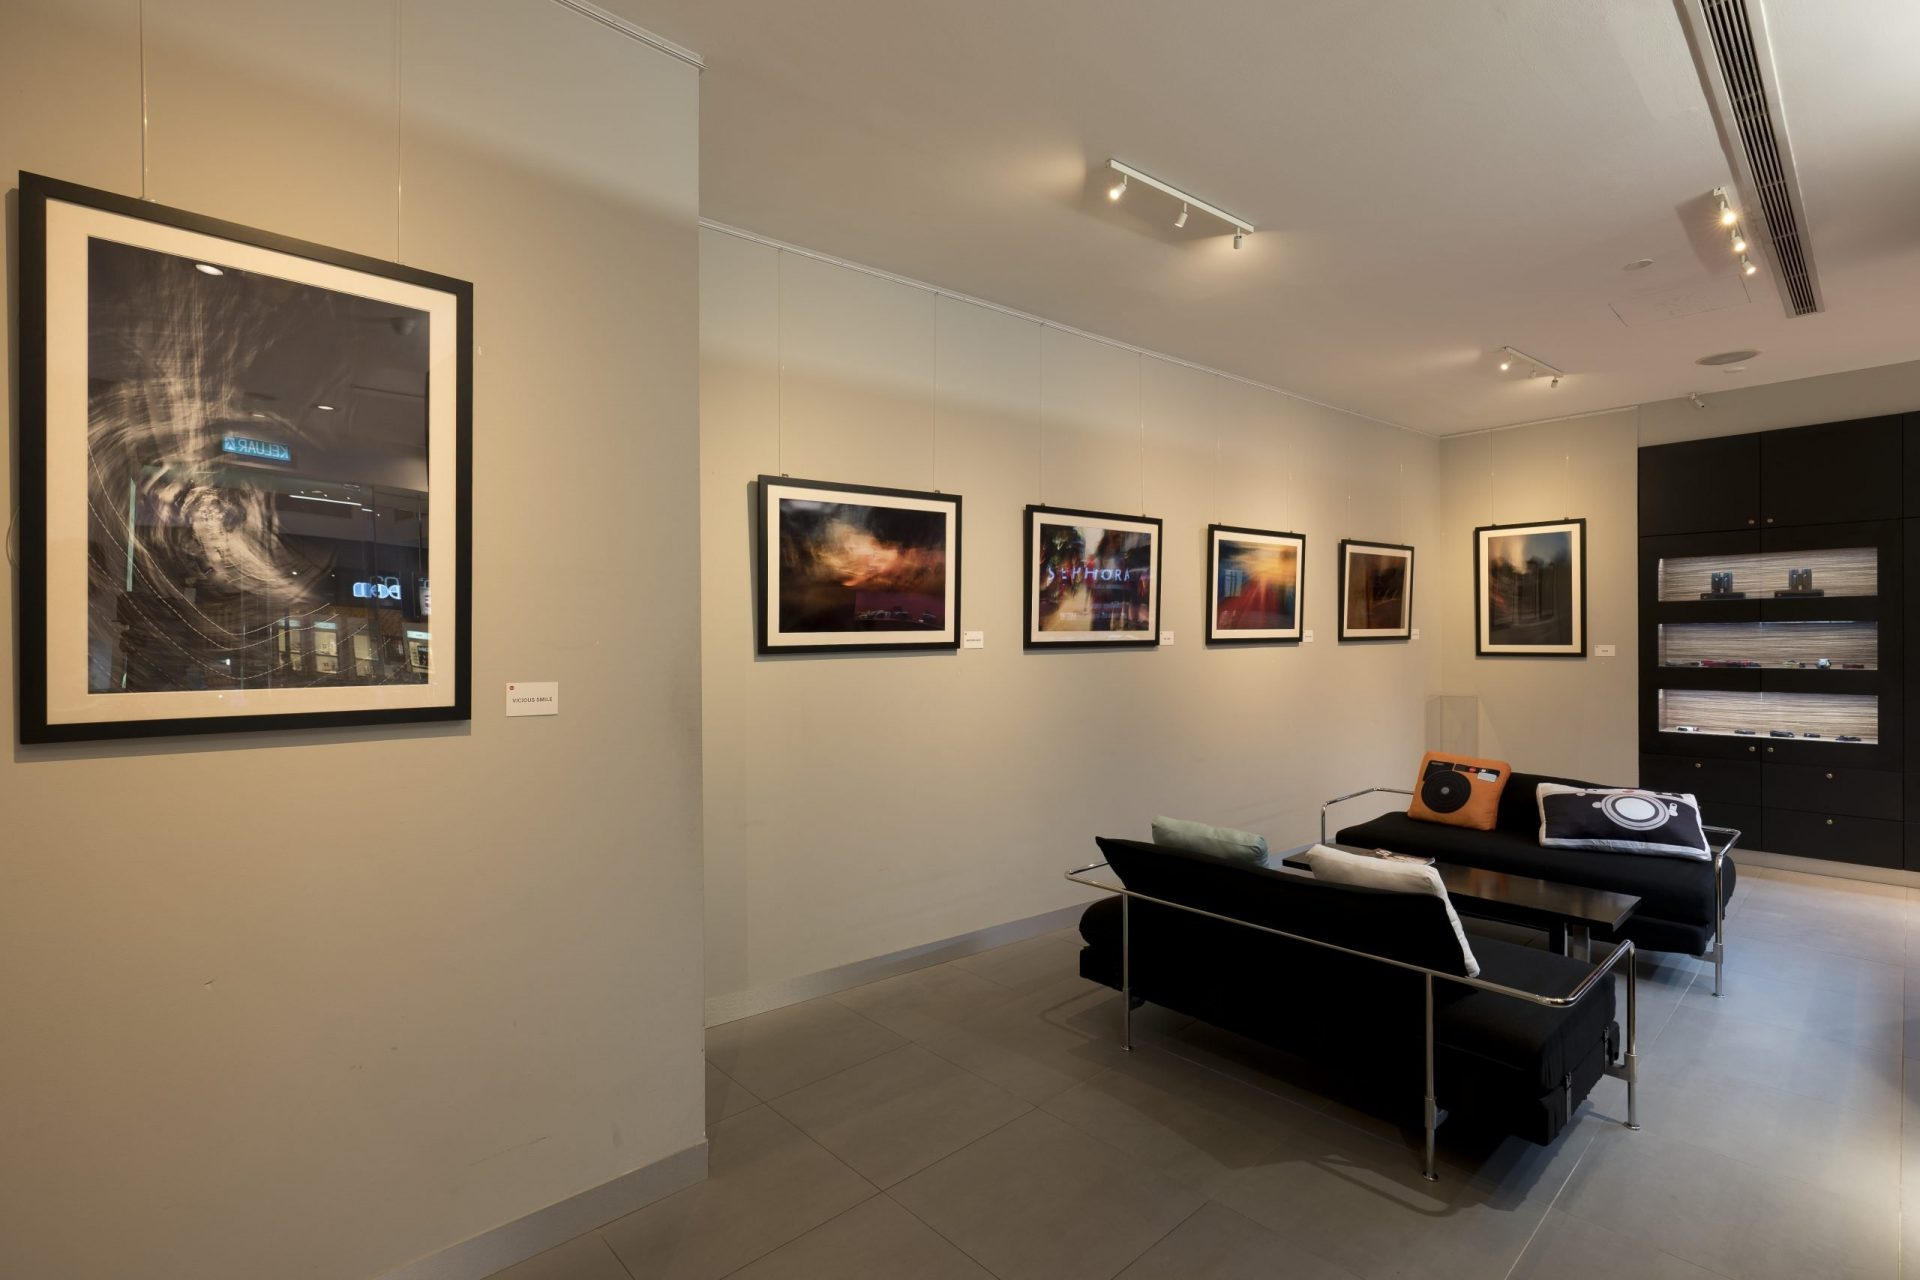 PHOTOGRAPHY TALK AND EXHIBITION